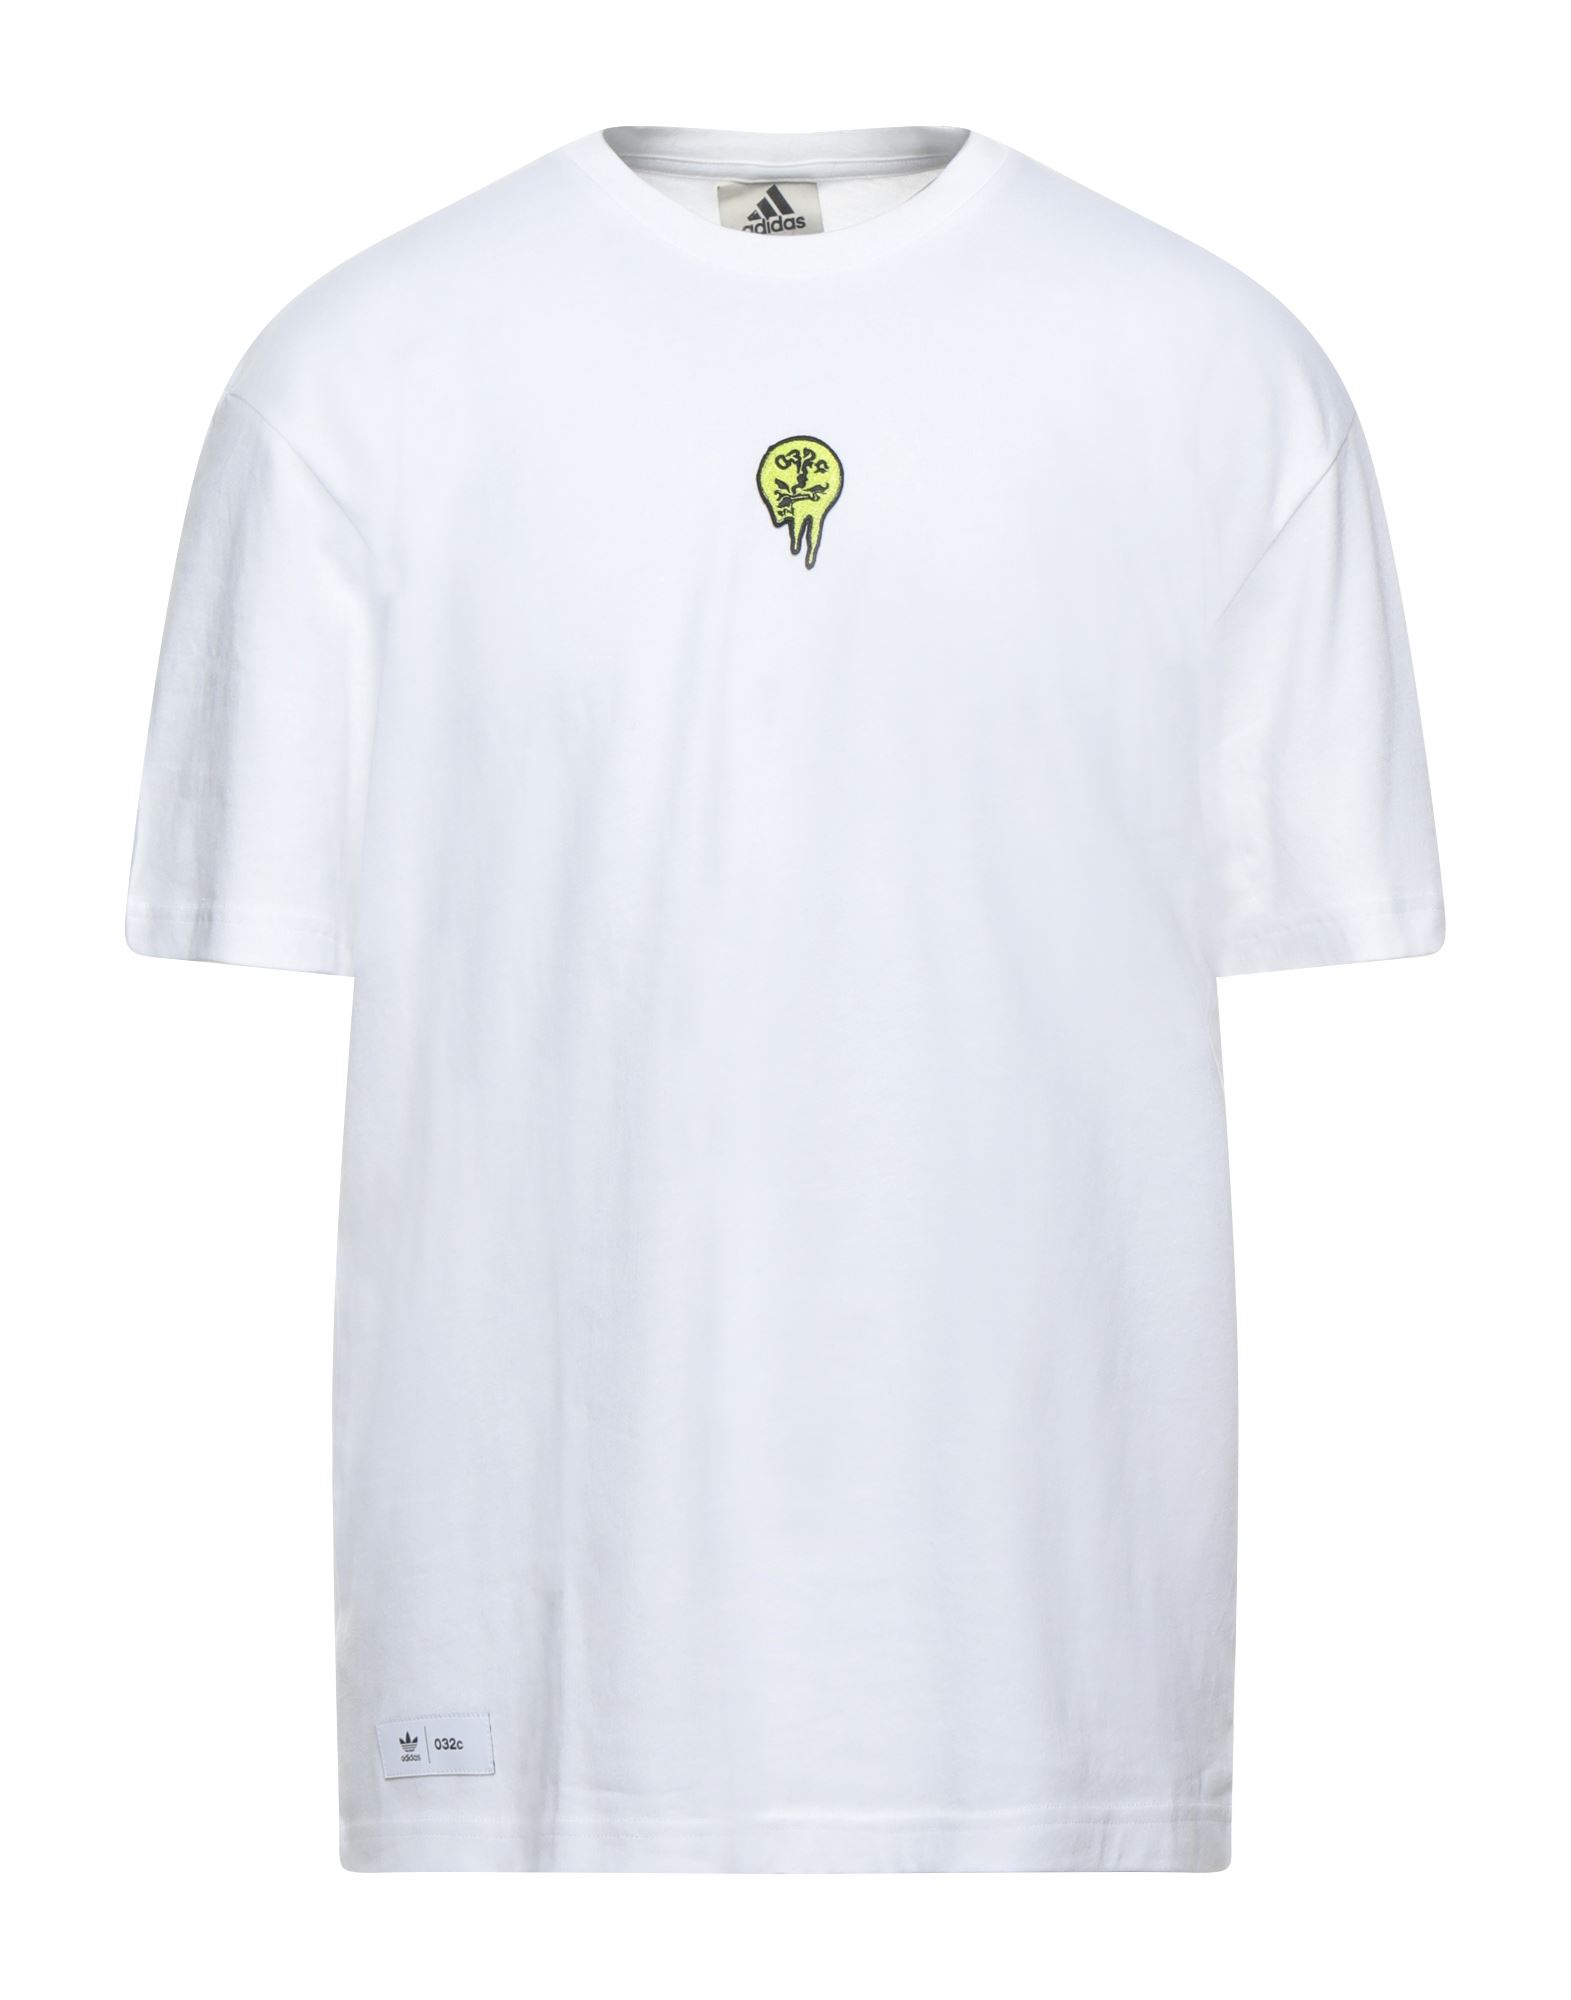 Adidas By 032c T-shirts In White